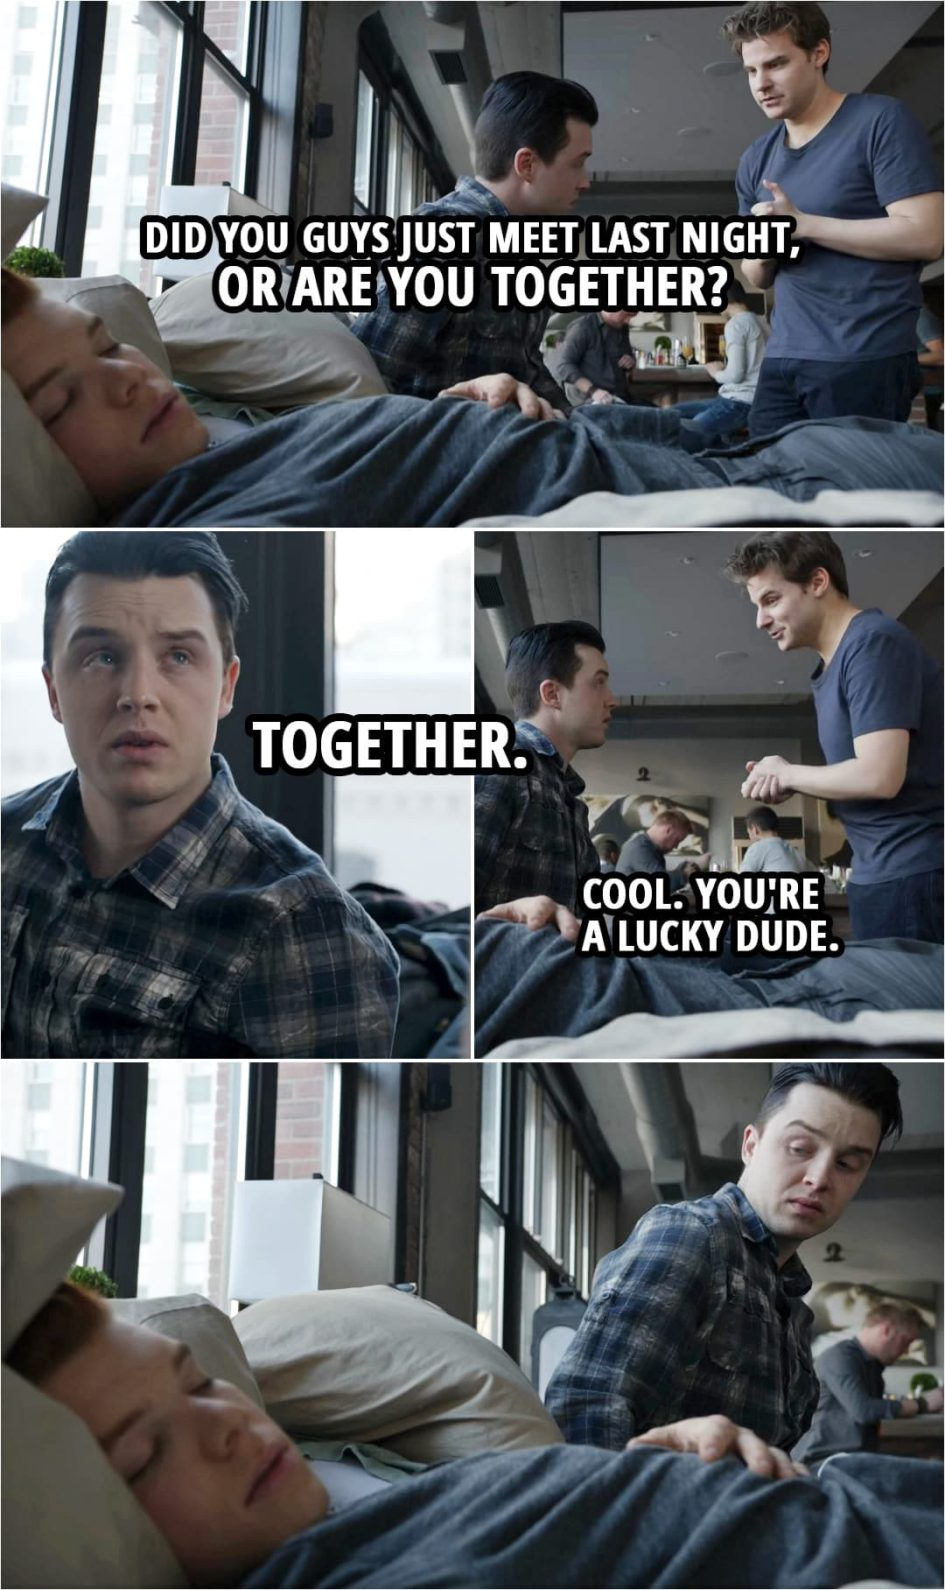 Quote from Shameless 4x08 | Ryan: Did you guys just meet last night, or are you together? Mickey Milkovich: Together. Ryan: Cool. You're a lucky dude.